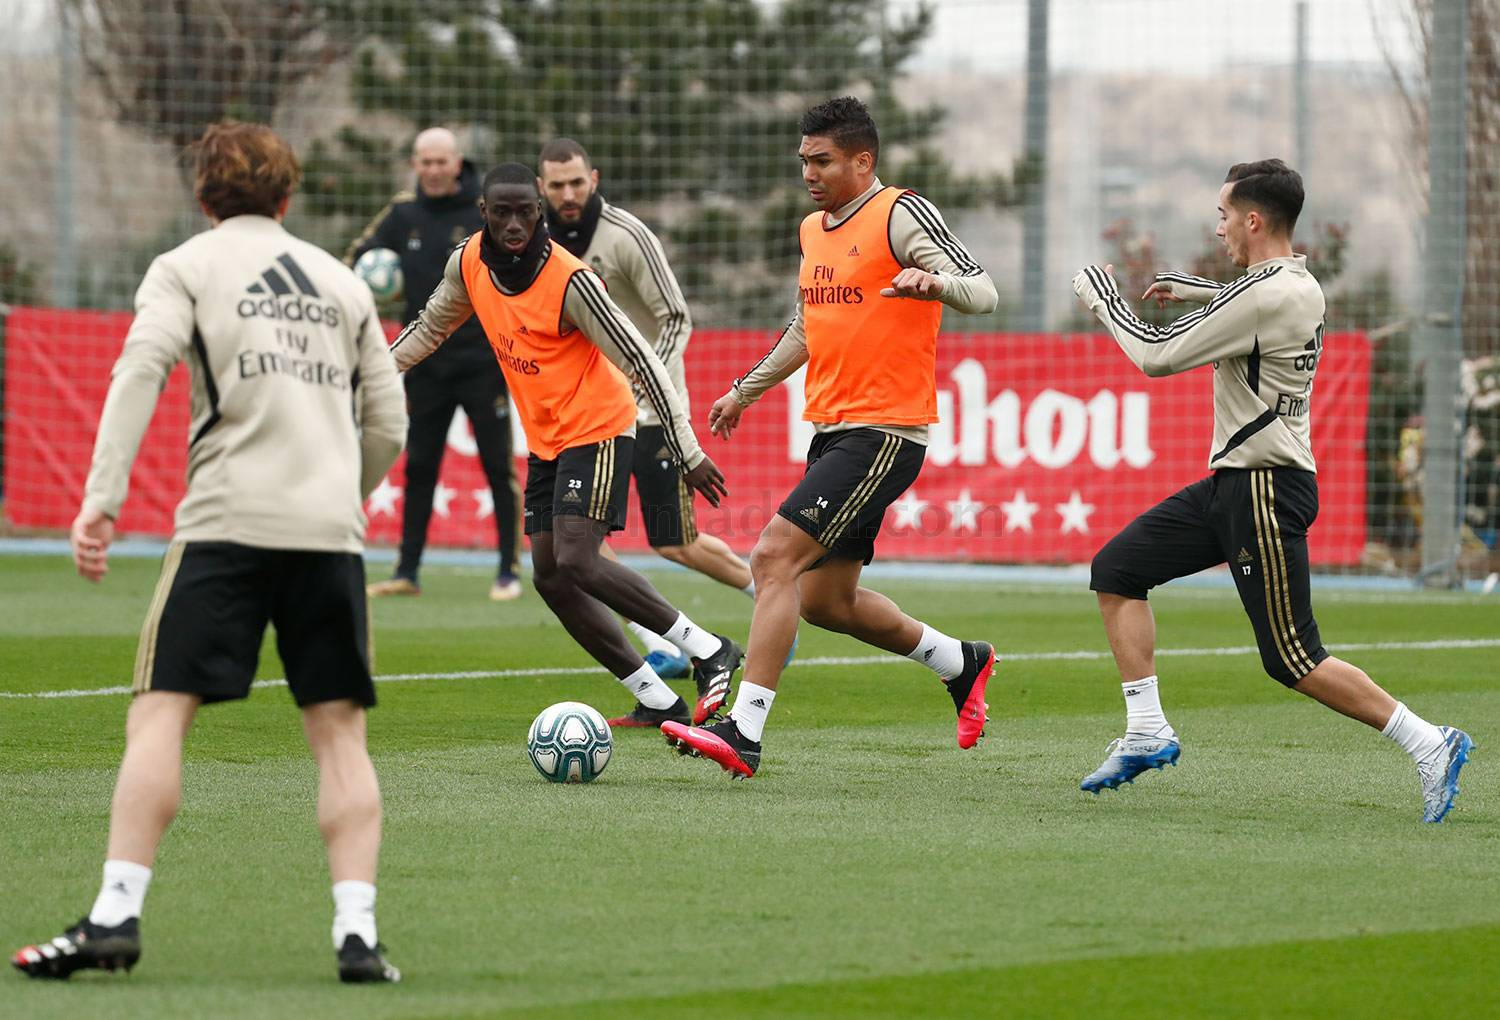 Real Madrid - Entrenamiento del Real Madrid  - 13-02-2020